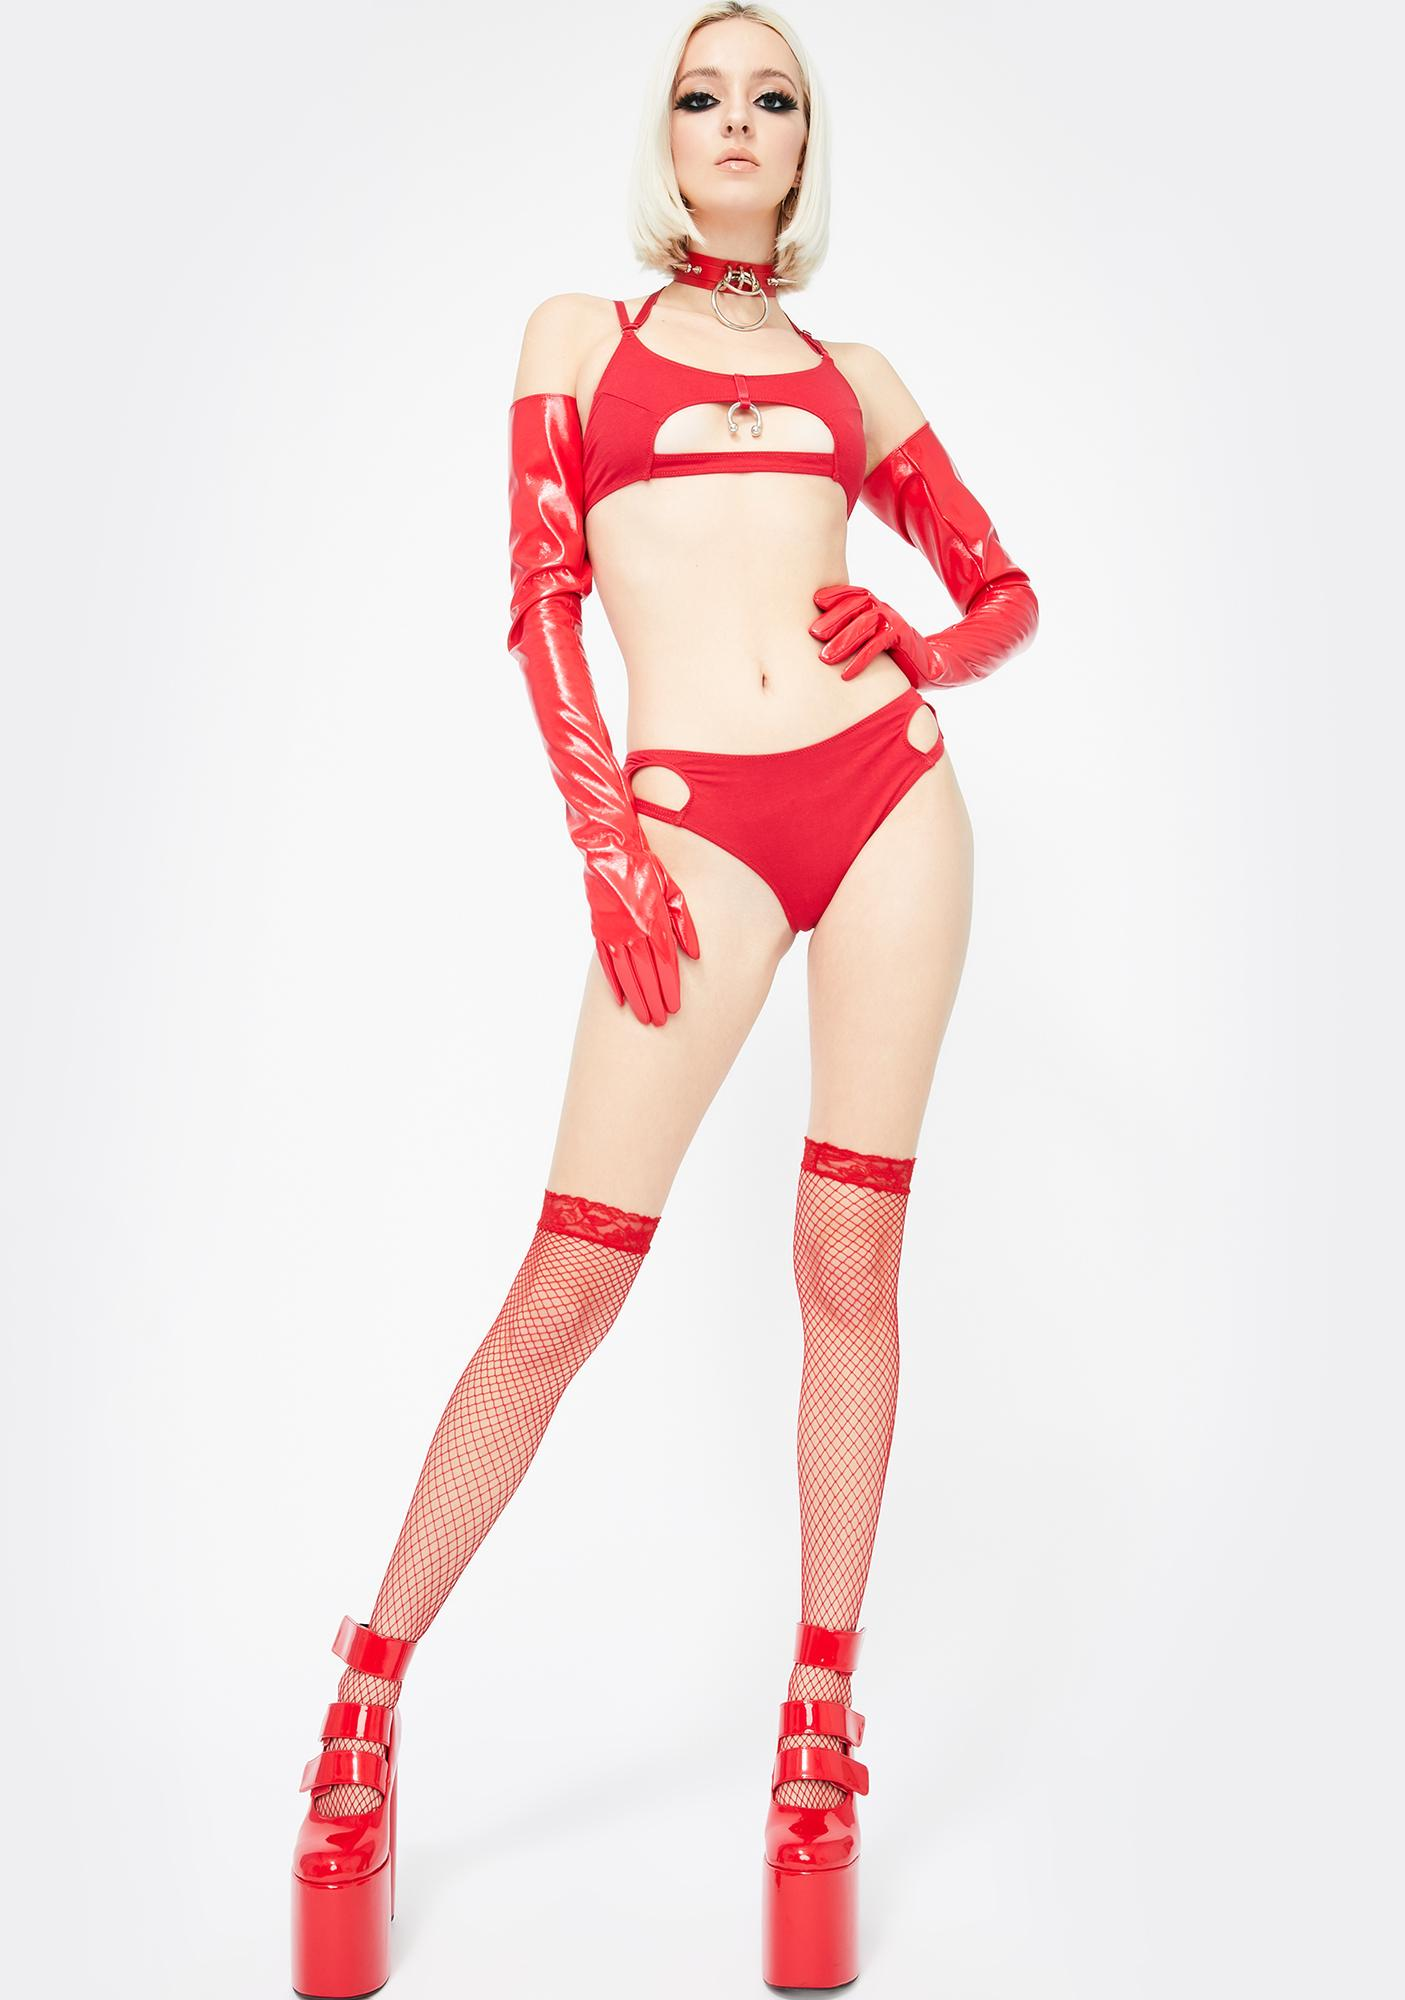 The End Lingerie Red With You Cut-Out Briefs